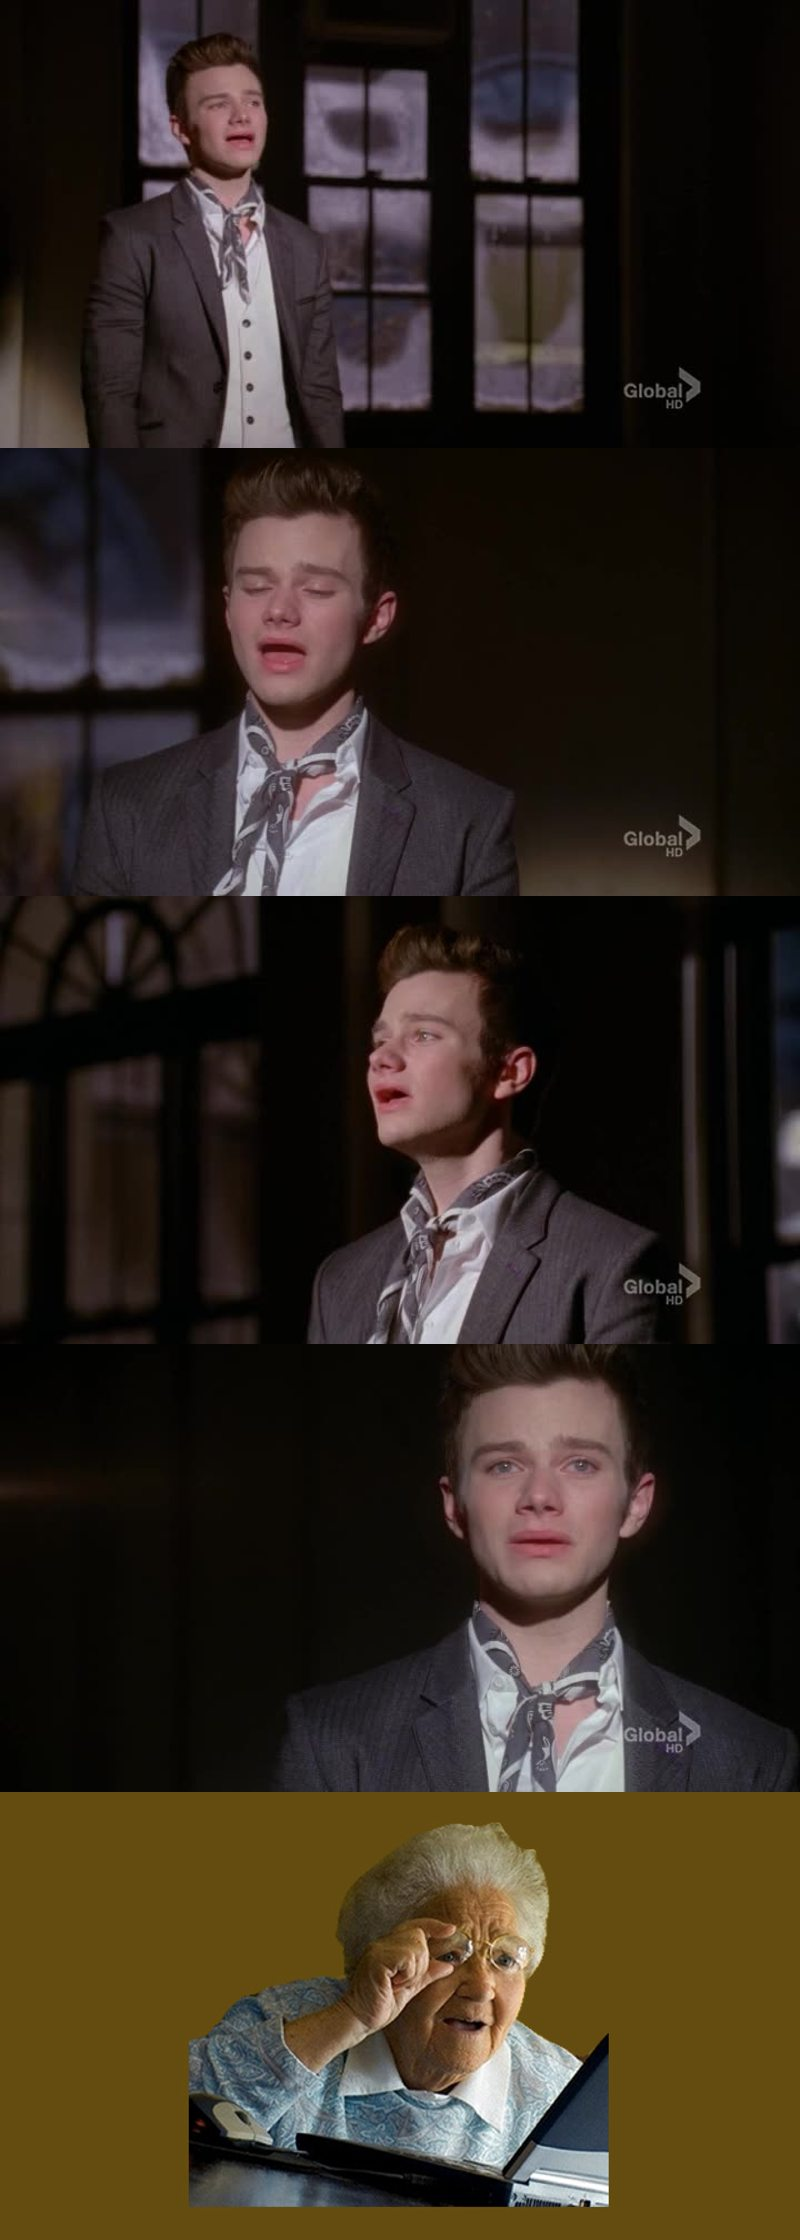 it's too weird how Kurt sings without showing his teeth